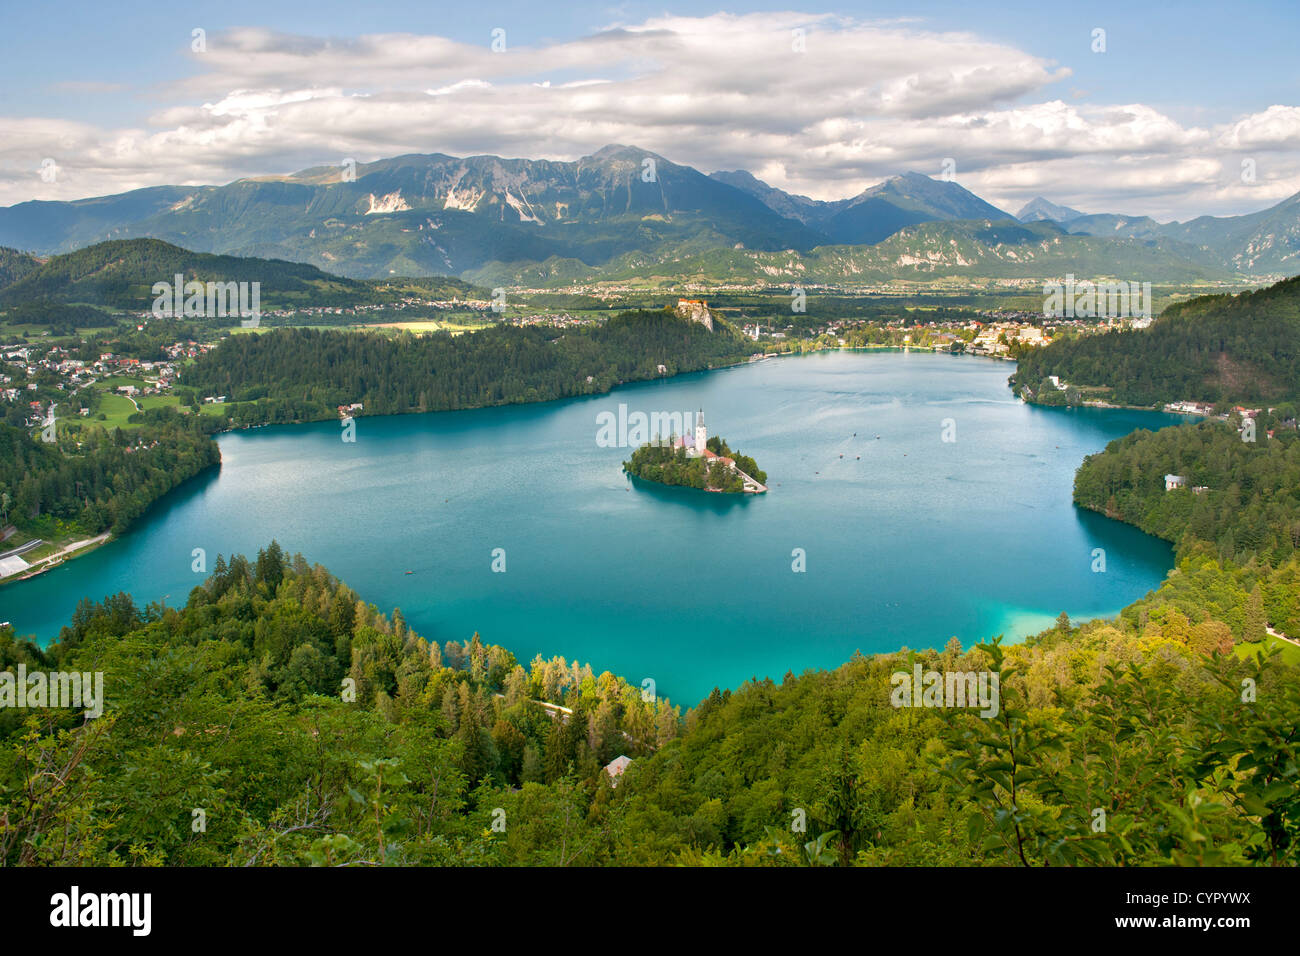 Lake Bled in the Julian Alps in northwest Slovenia. - Stock Image